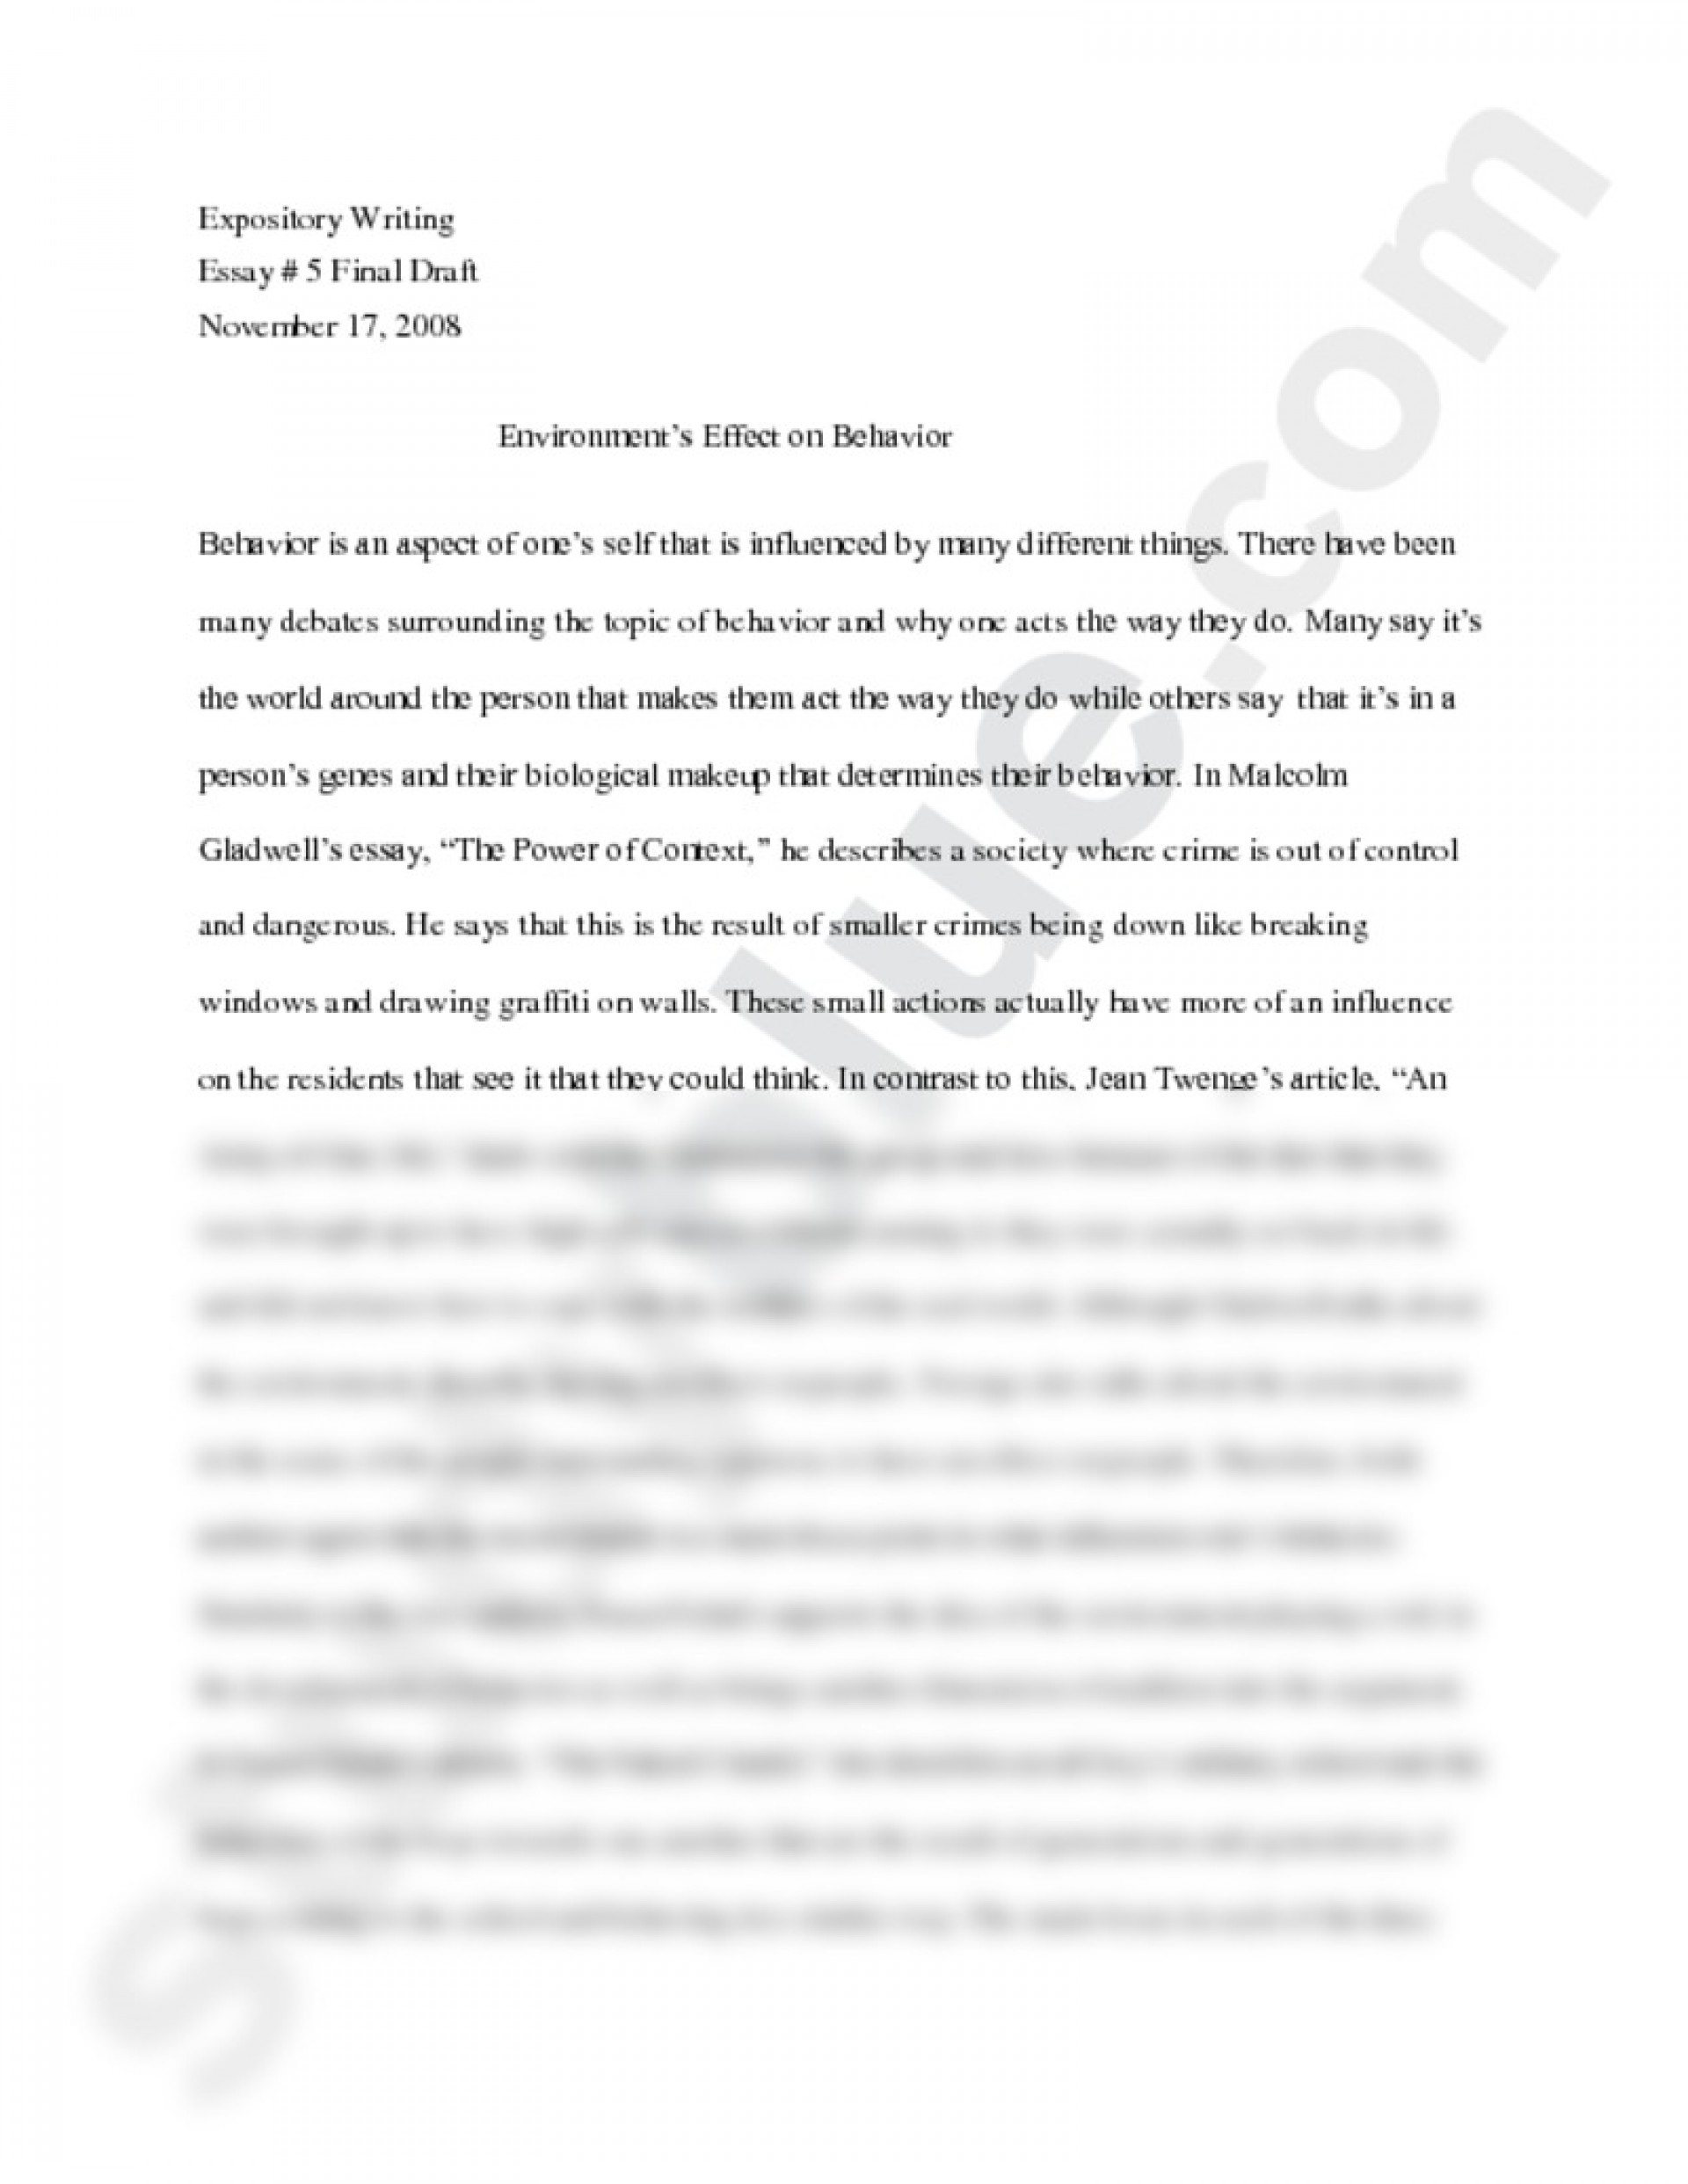 011 Topics For Expository Essay What Is Example Pre Art Museum Sample Paper Formidable About Related To Artificial Intelligence Philosophy Of Argumentative Performing Arts 1920